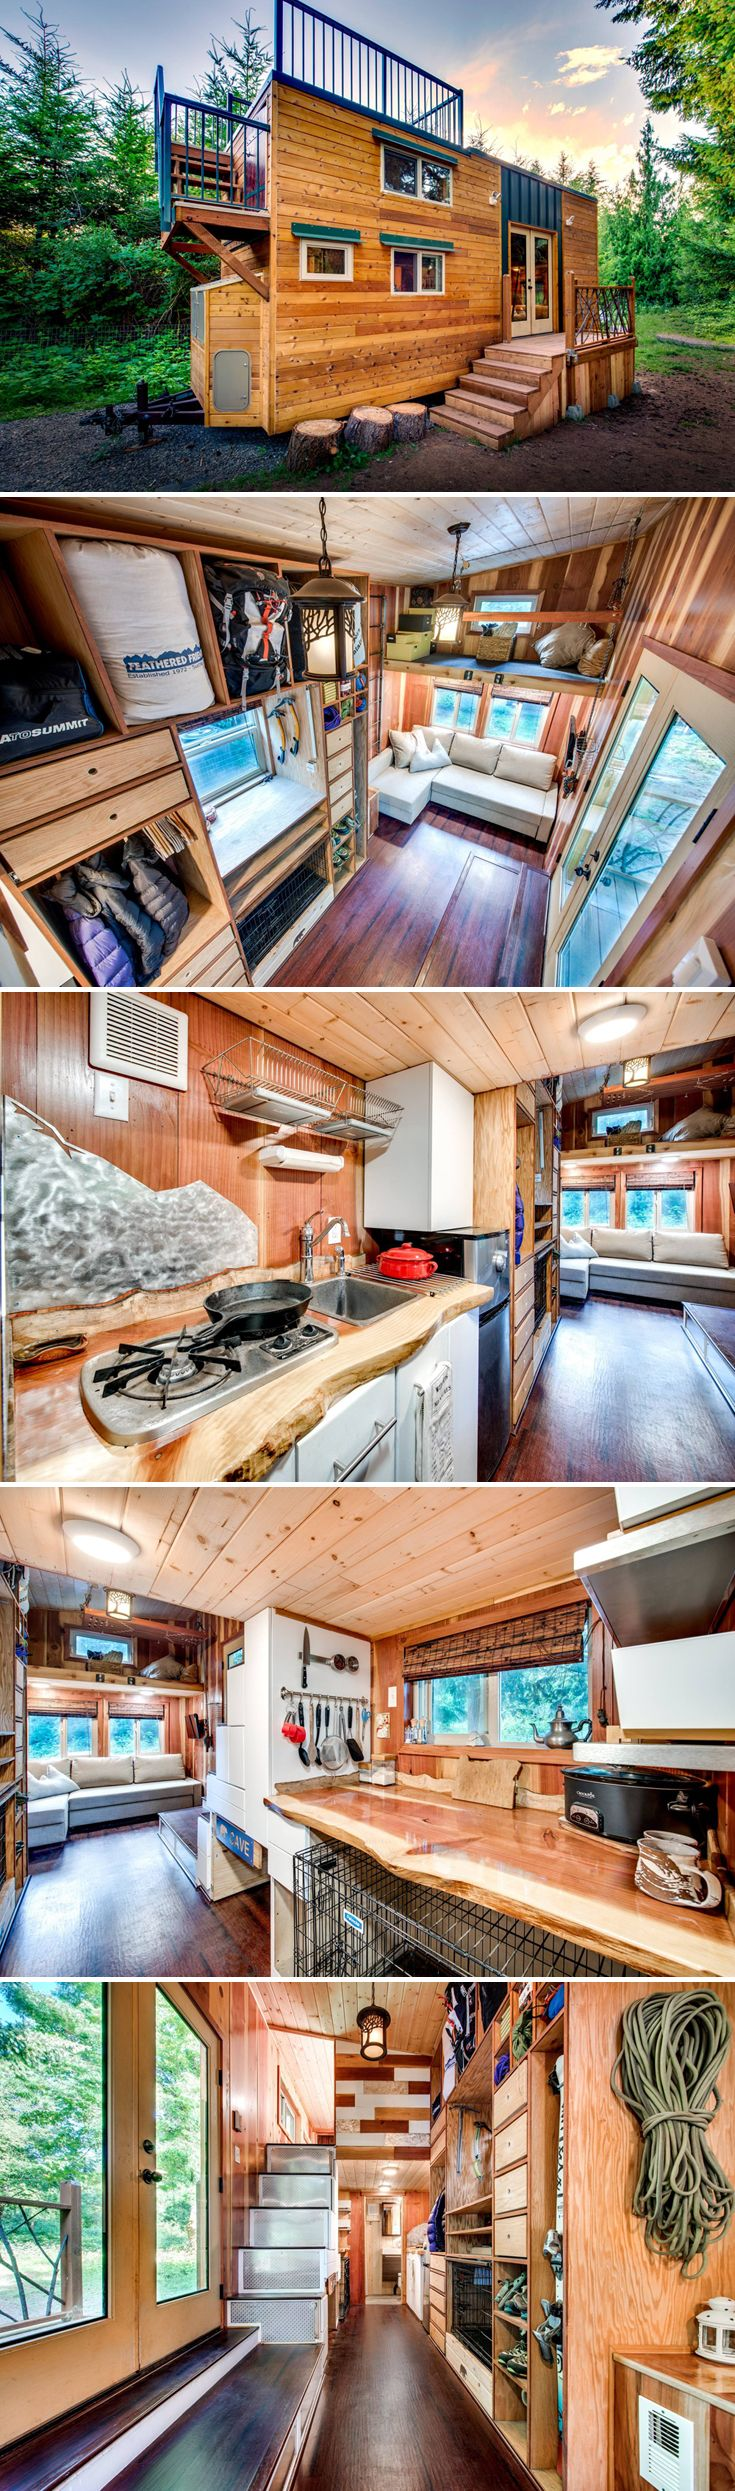 House design documentary - A 204 Square Foot Tiny House With A Large Rooftop Deck Lots Of